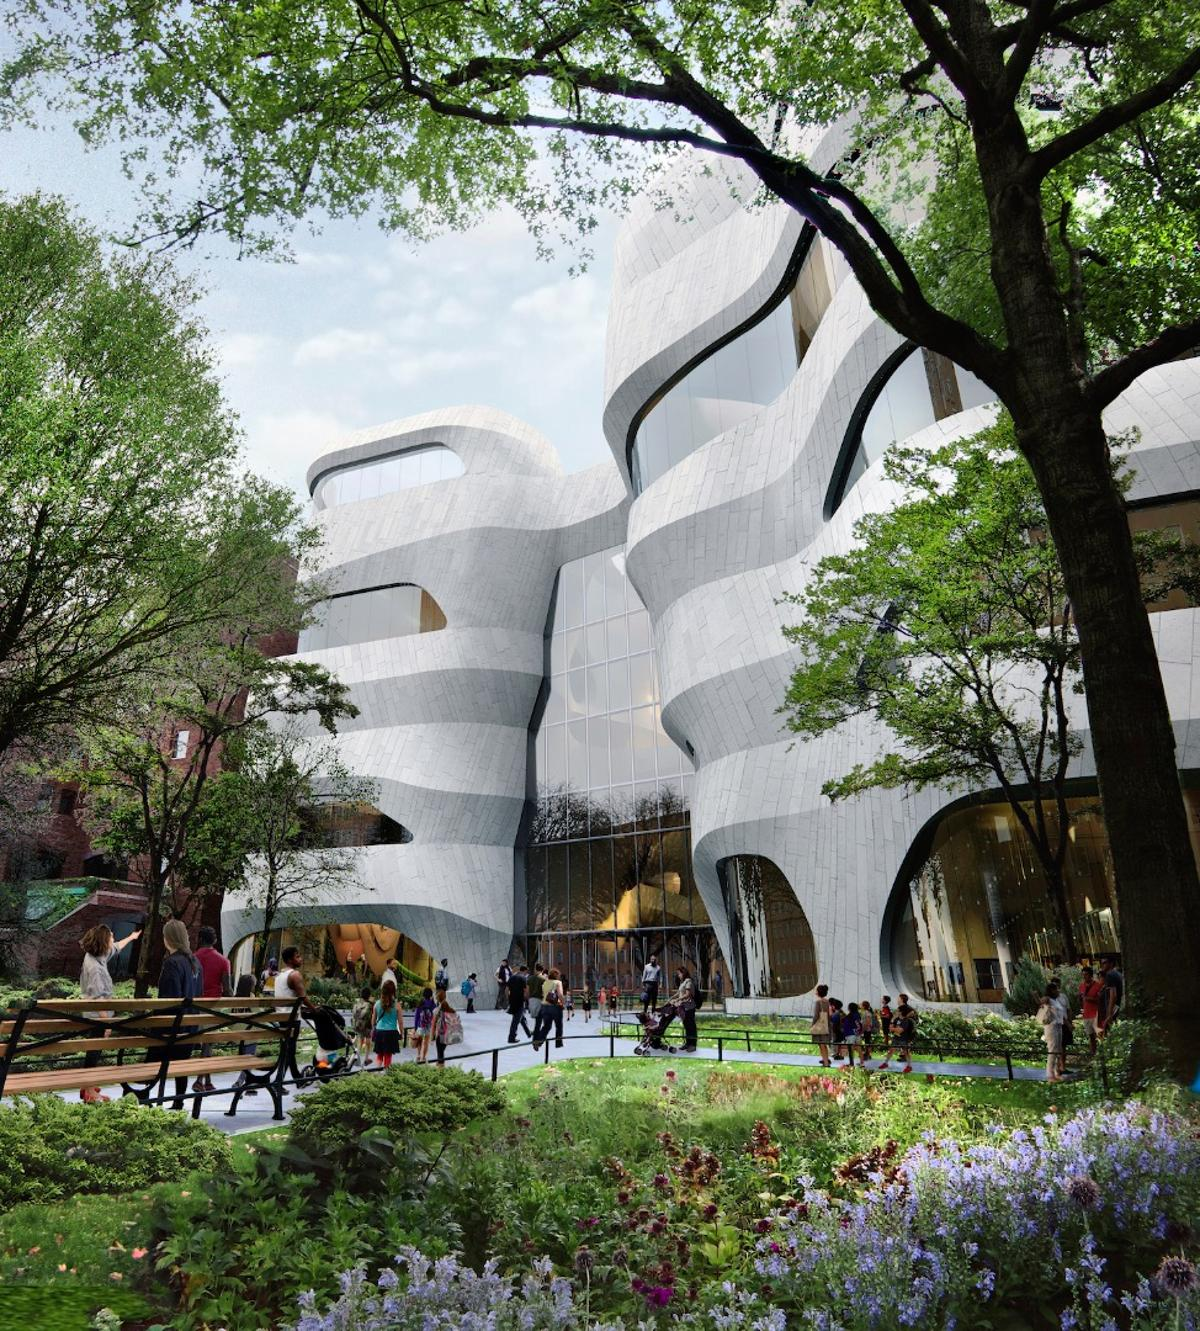 The Richard Gilder Center for Science, Education, and Innovationhas a budget of US$383 million and is expected to openin late 2020